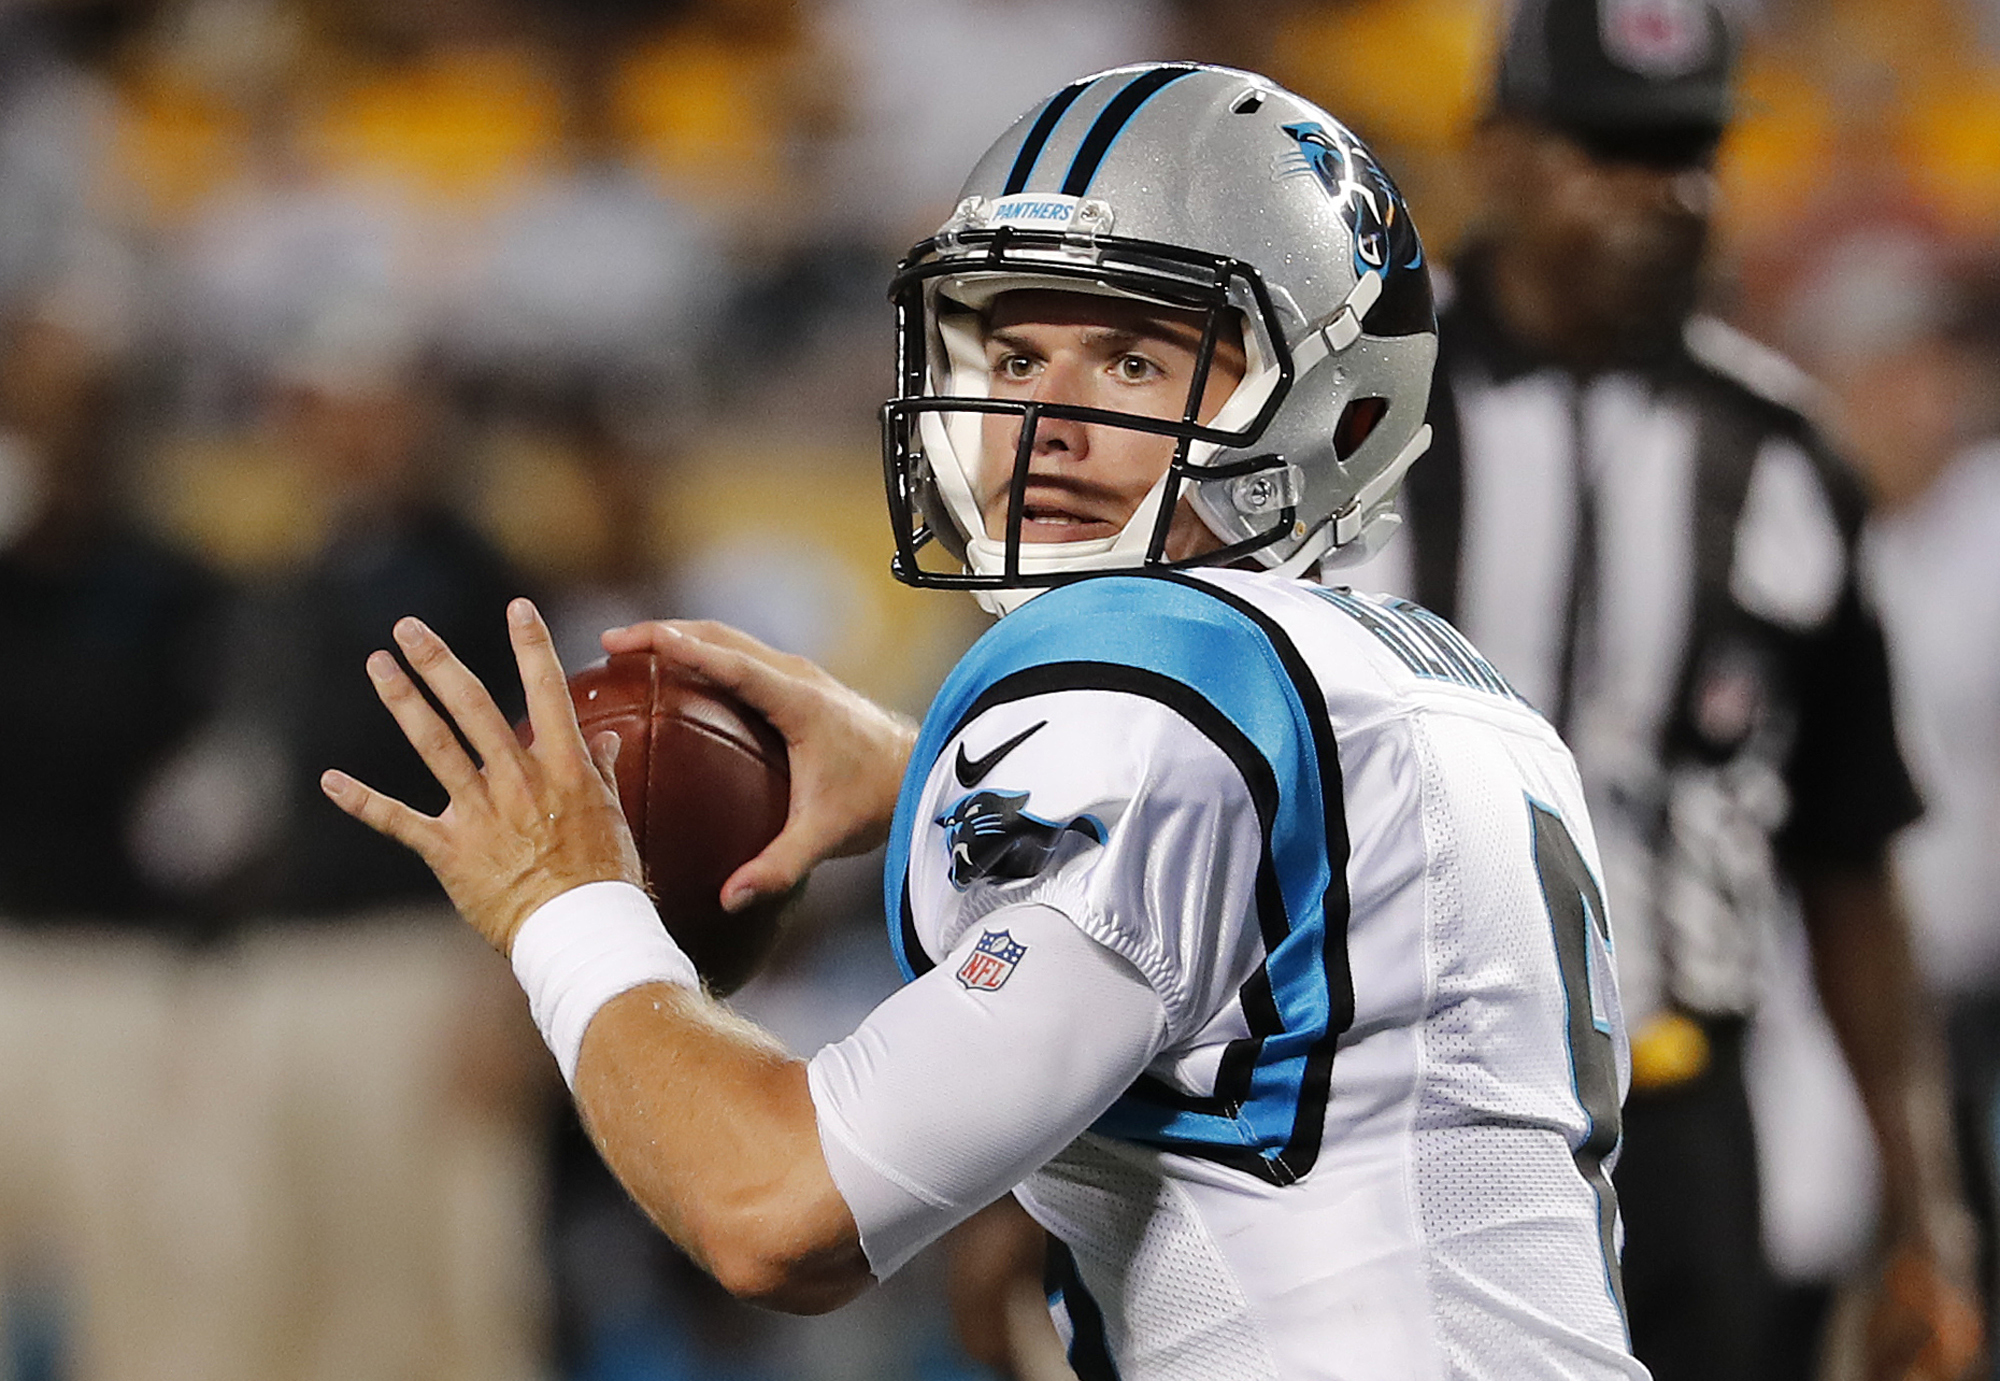 Panthers choose Heinicke over Gilbert as No. 2 QB